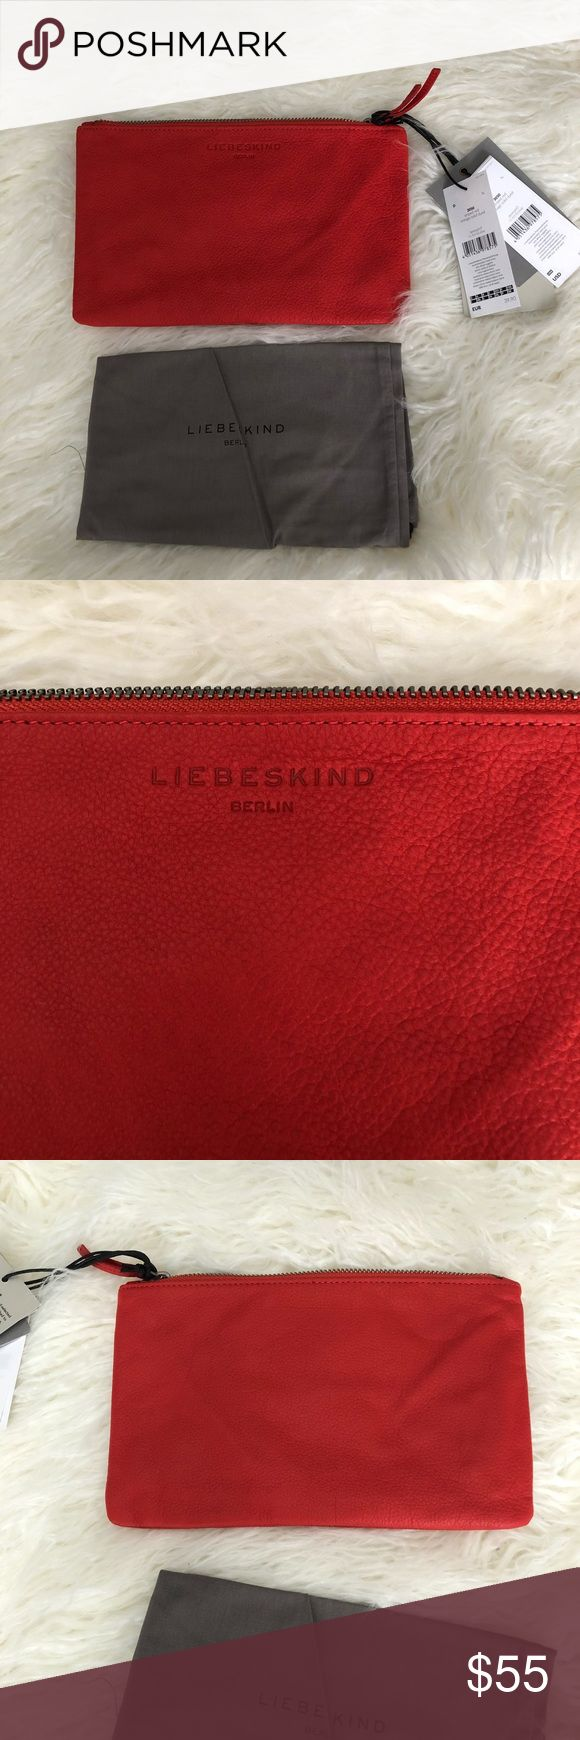 Leibeskind Berlin Leather Pouch New! Pebble leather - measures 9x6. Fabulous little pouch for all your necessities! Could be used as a clutch as well. Authentic. Comes with dust bag Liebeskind Bags Mini Bags